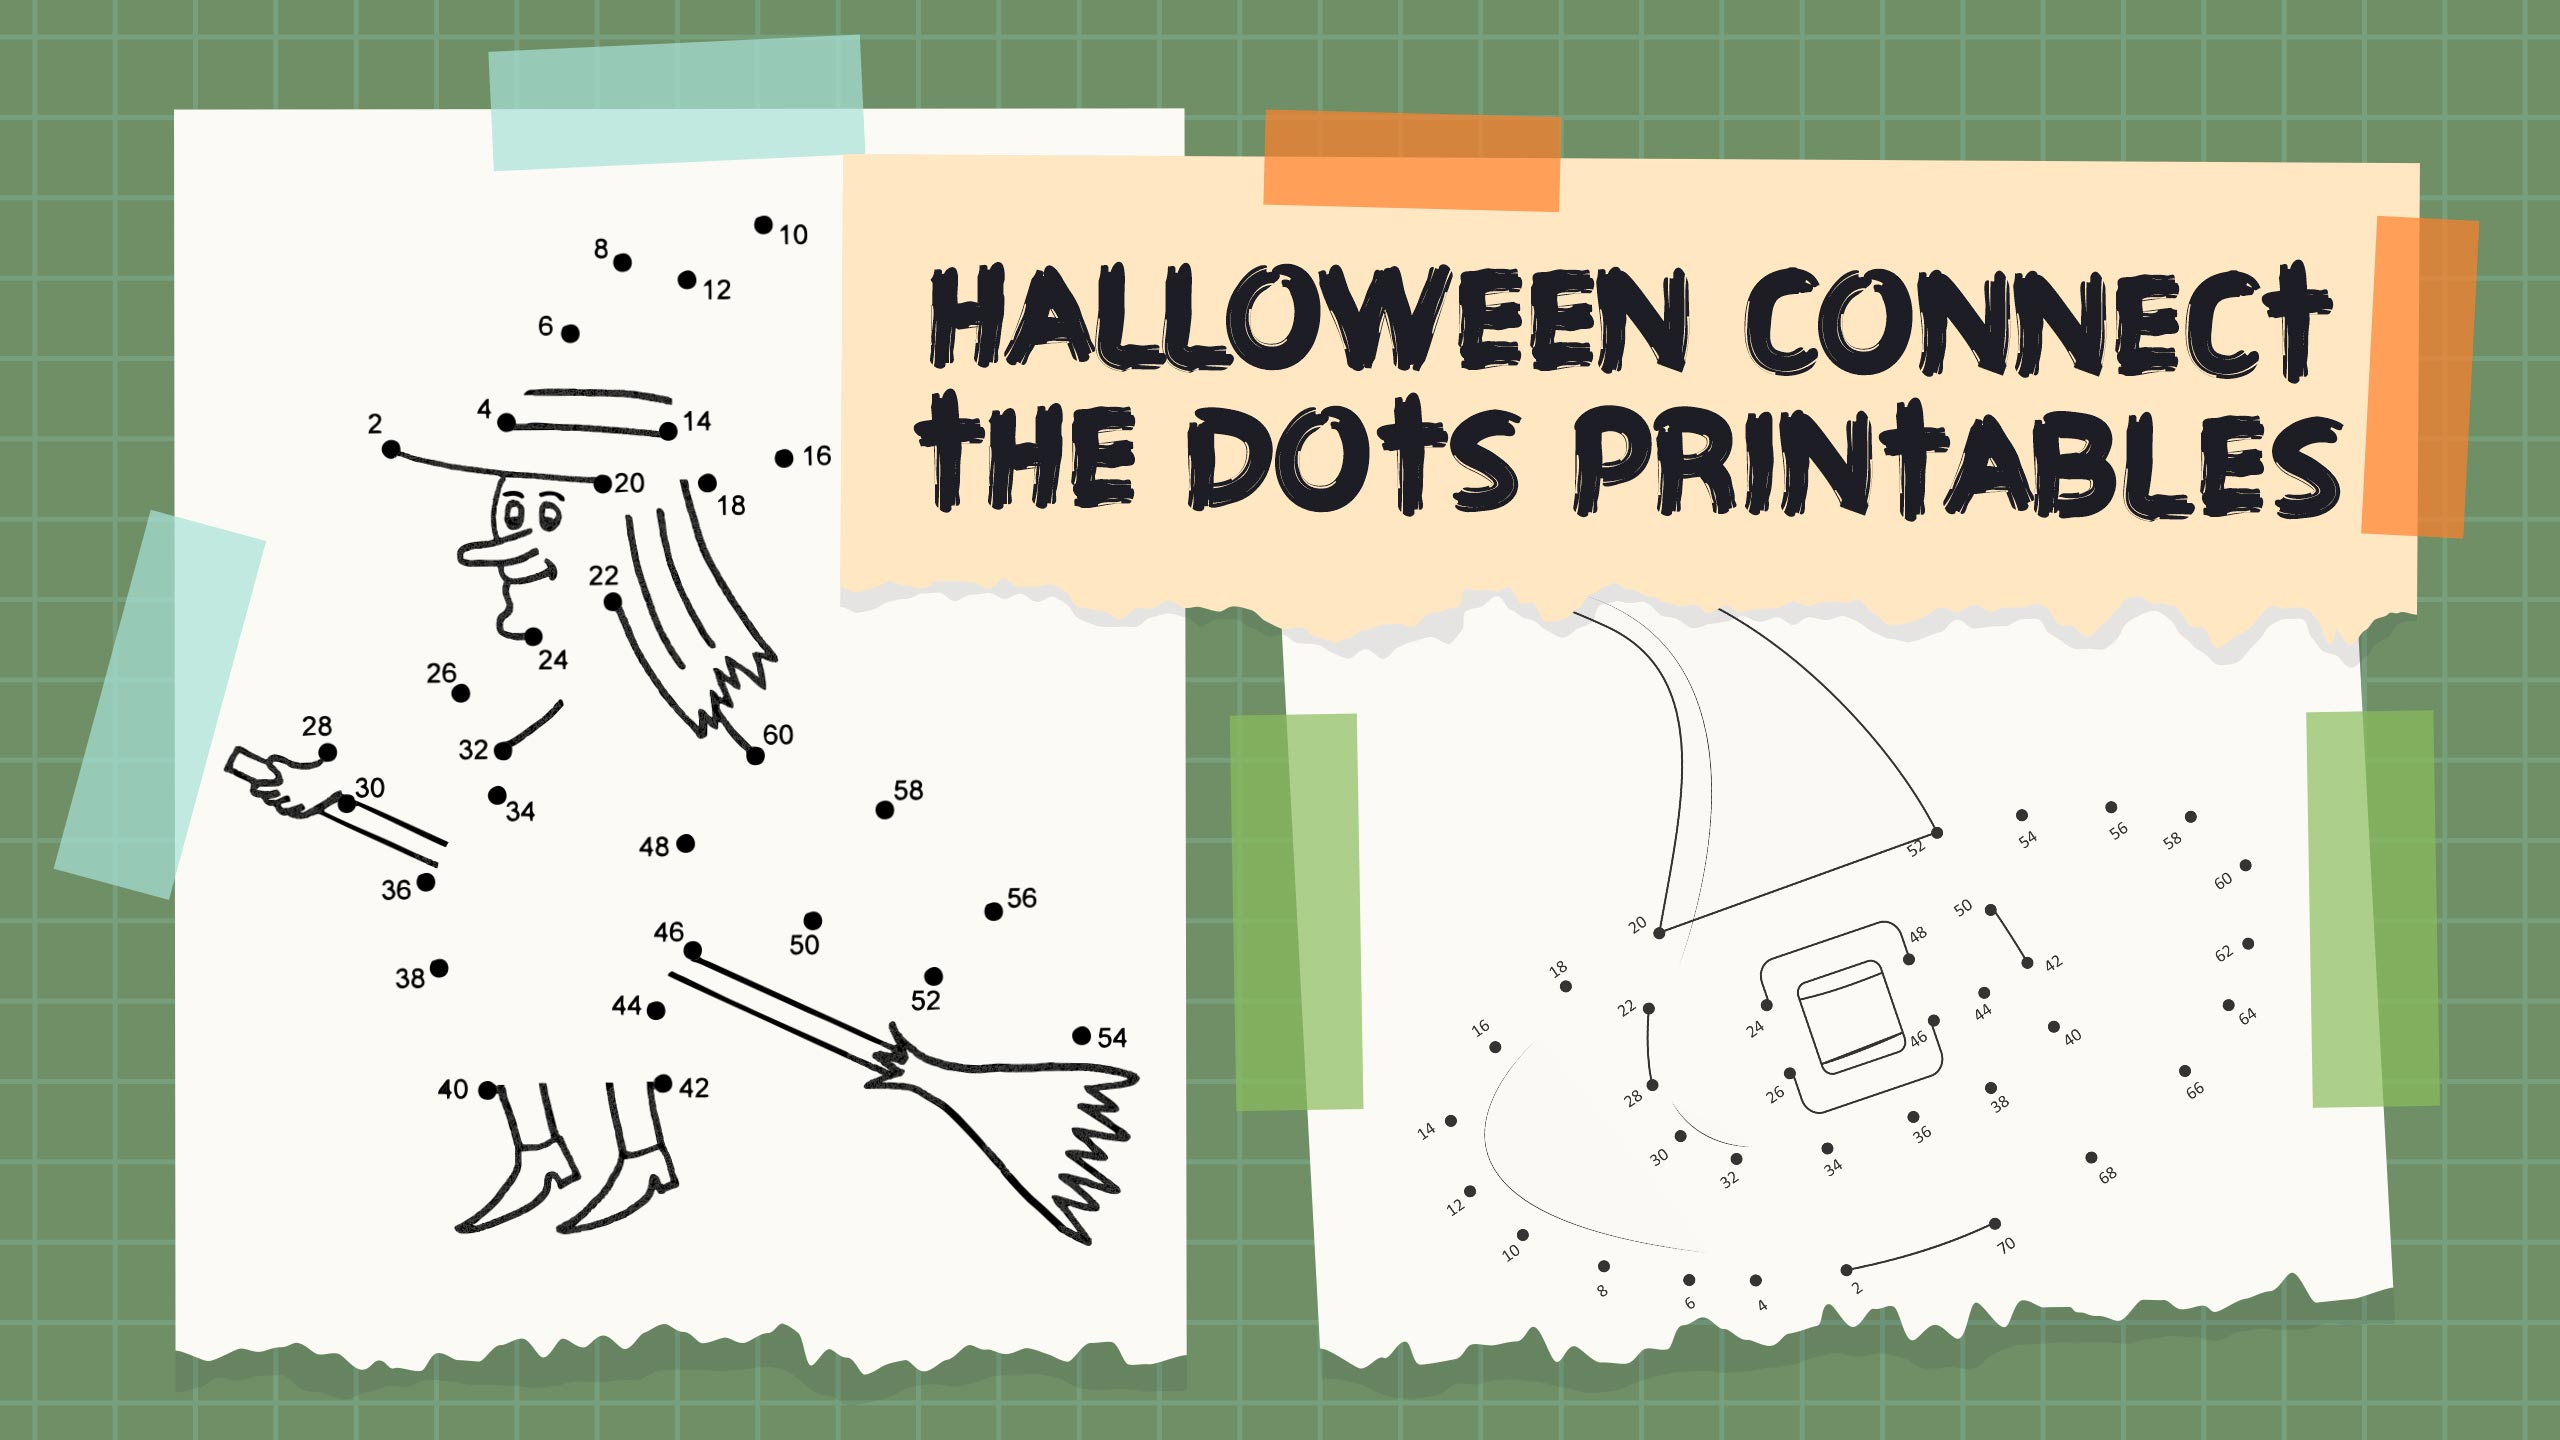 Halloween Connect The Dots Printables